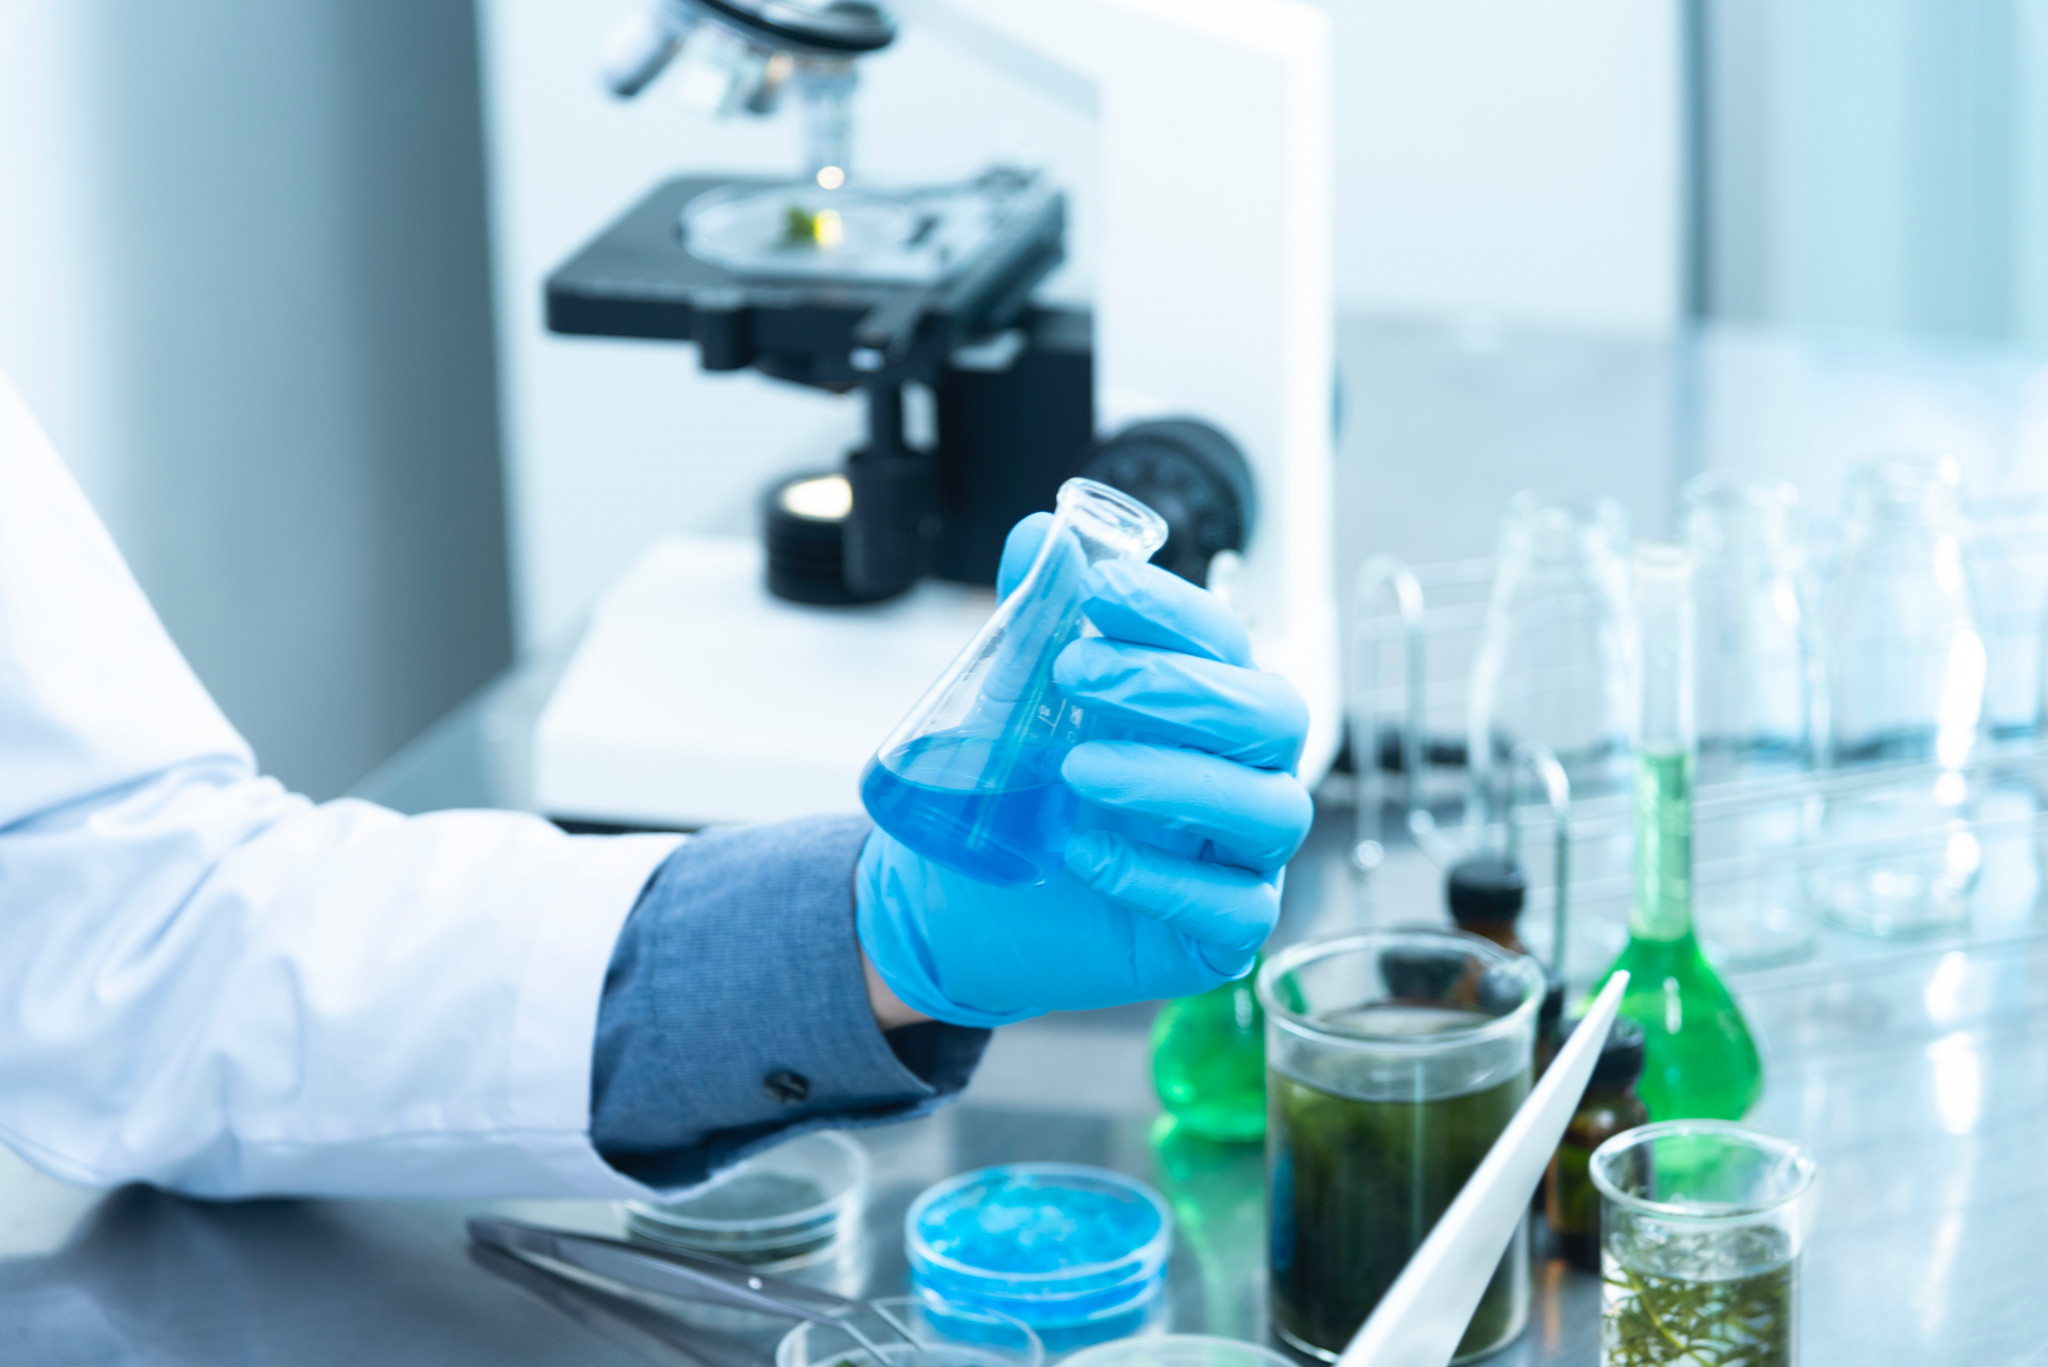 Teaching core academic skills across modules and Programmes in the Life Sciences